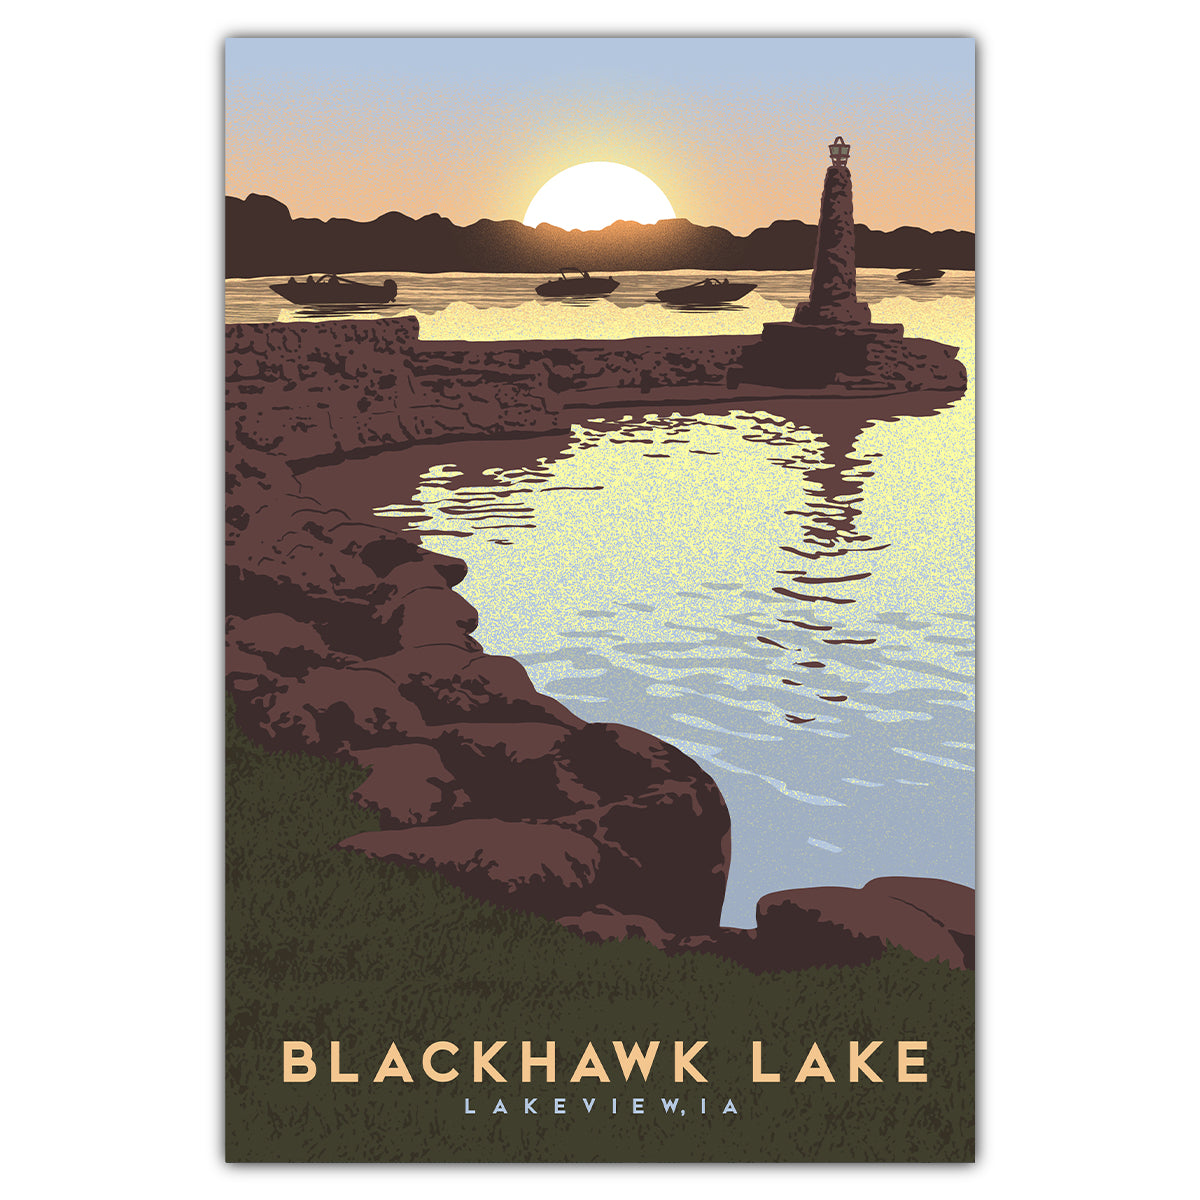 Blackhawk Lake Postcard